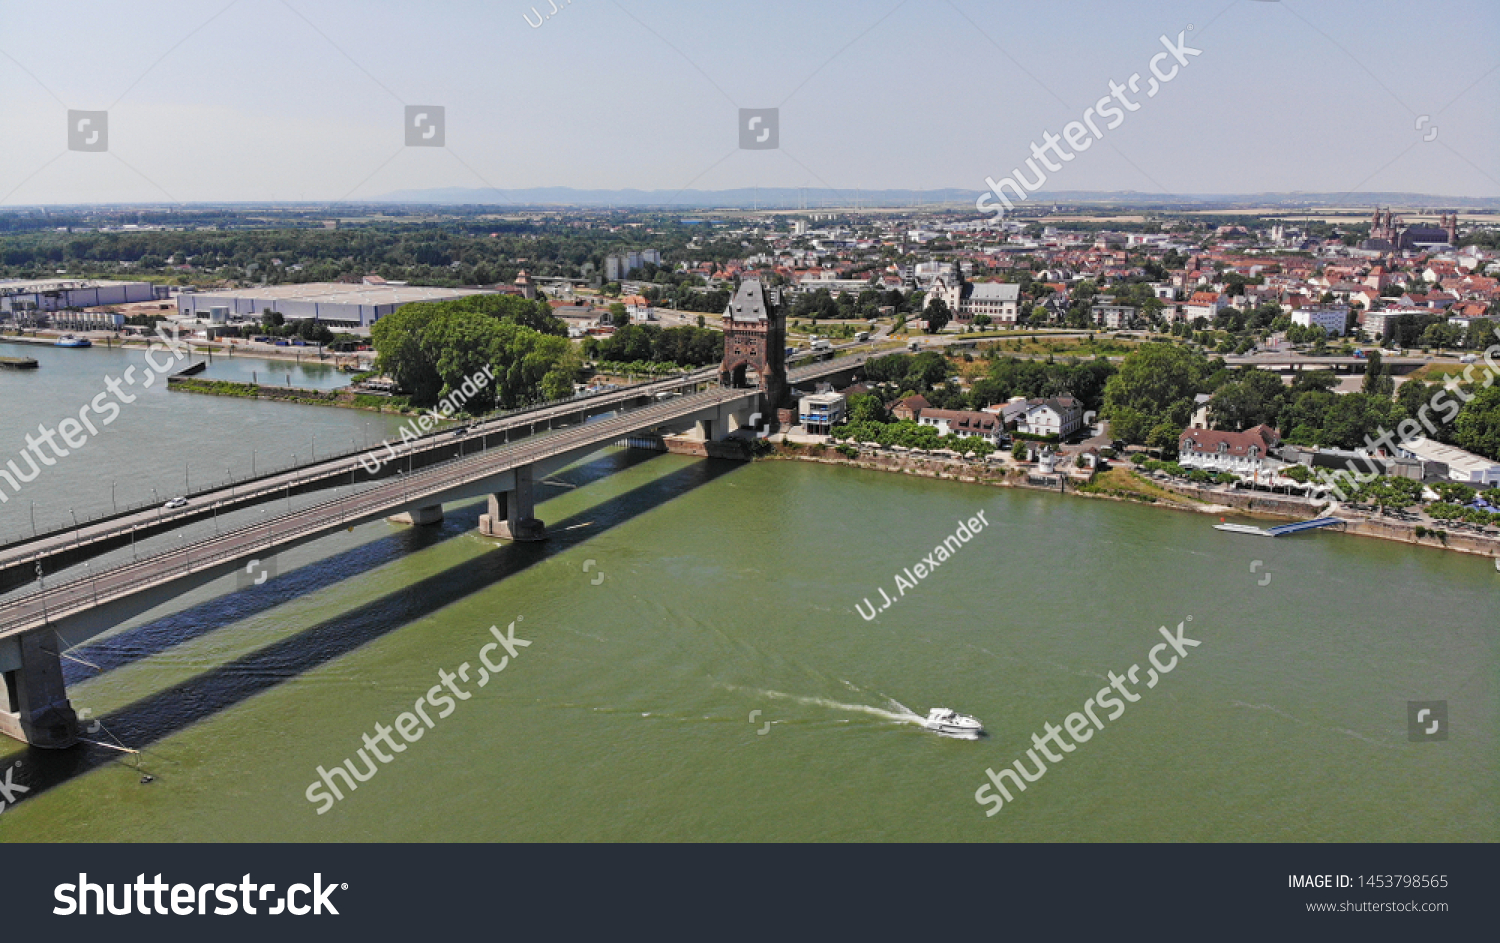 Aerial view of Worms, Rhineland-Palatinate, Germany #1453798565